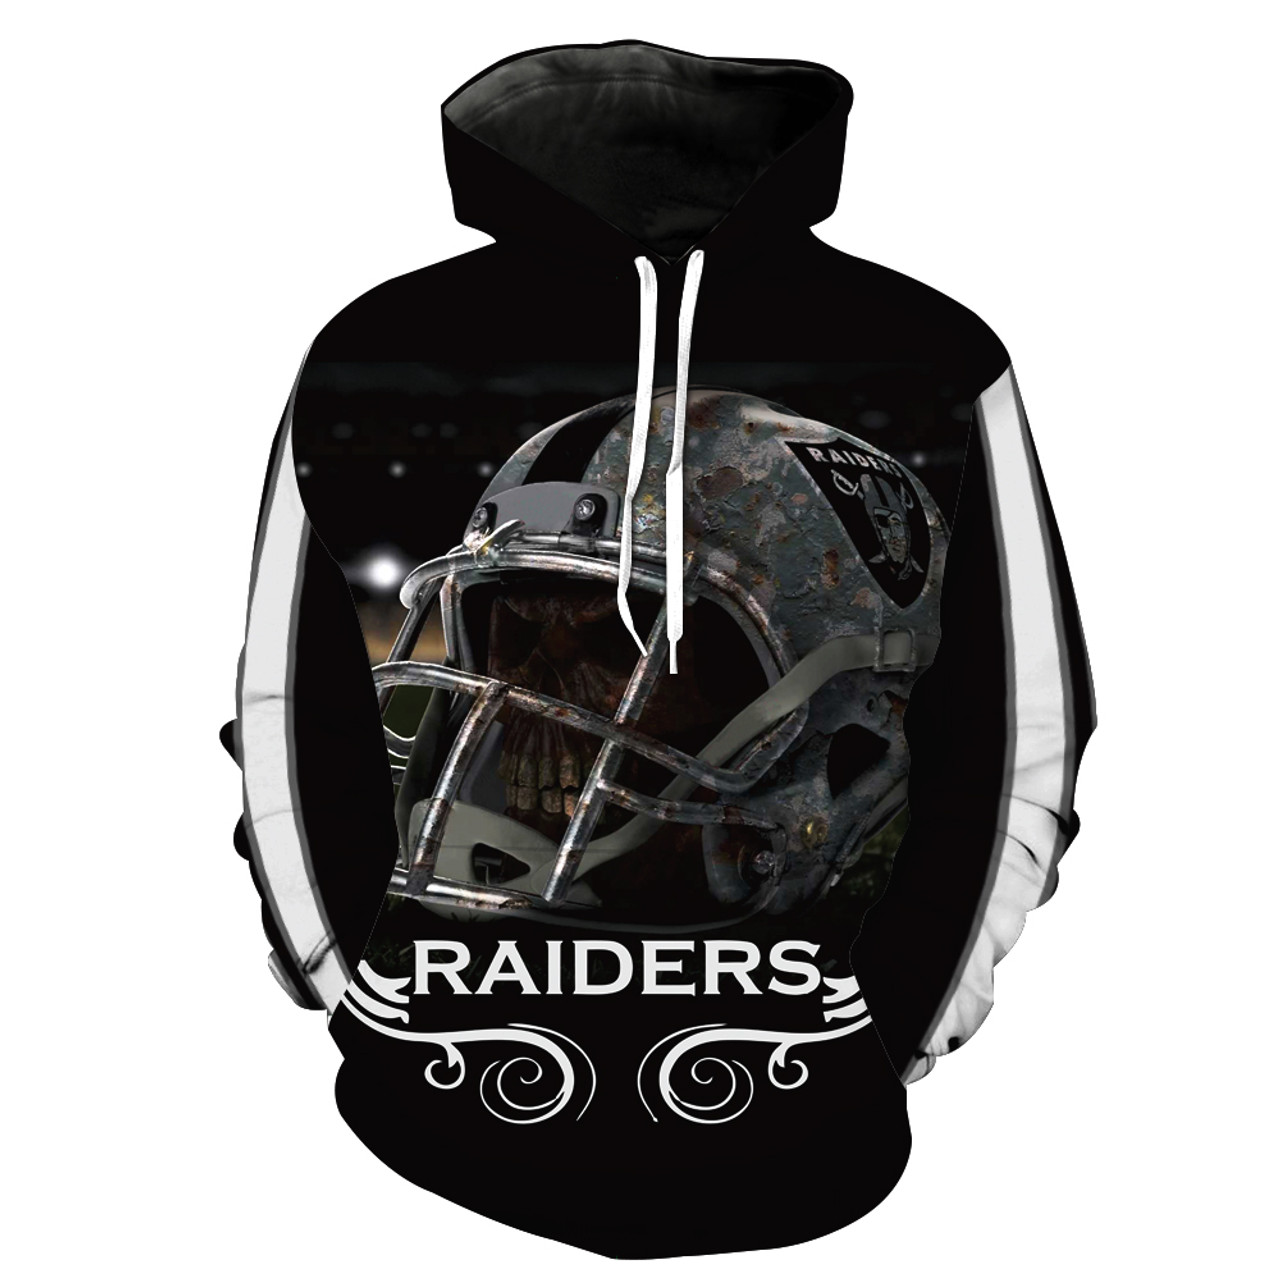 Officially Licensed N F L Oakland Raiders Trendy Pullover Team Hoodies Nice Custom 3d Effect Graphic Printed Double Sided All Over Official Raiders Logos Official Classic Raiders Team Colors Warm Premium Official Team Pullover Hoodies